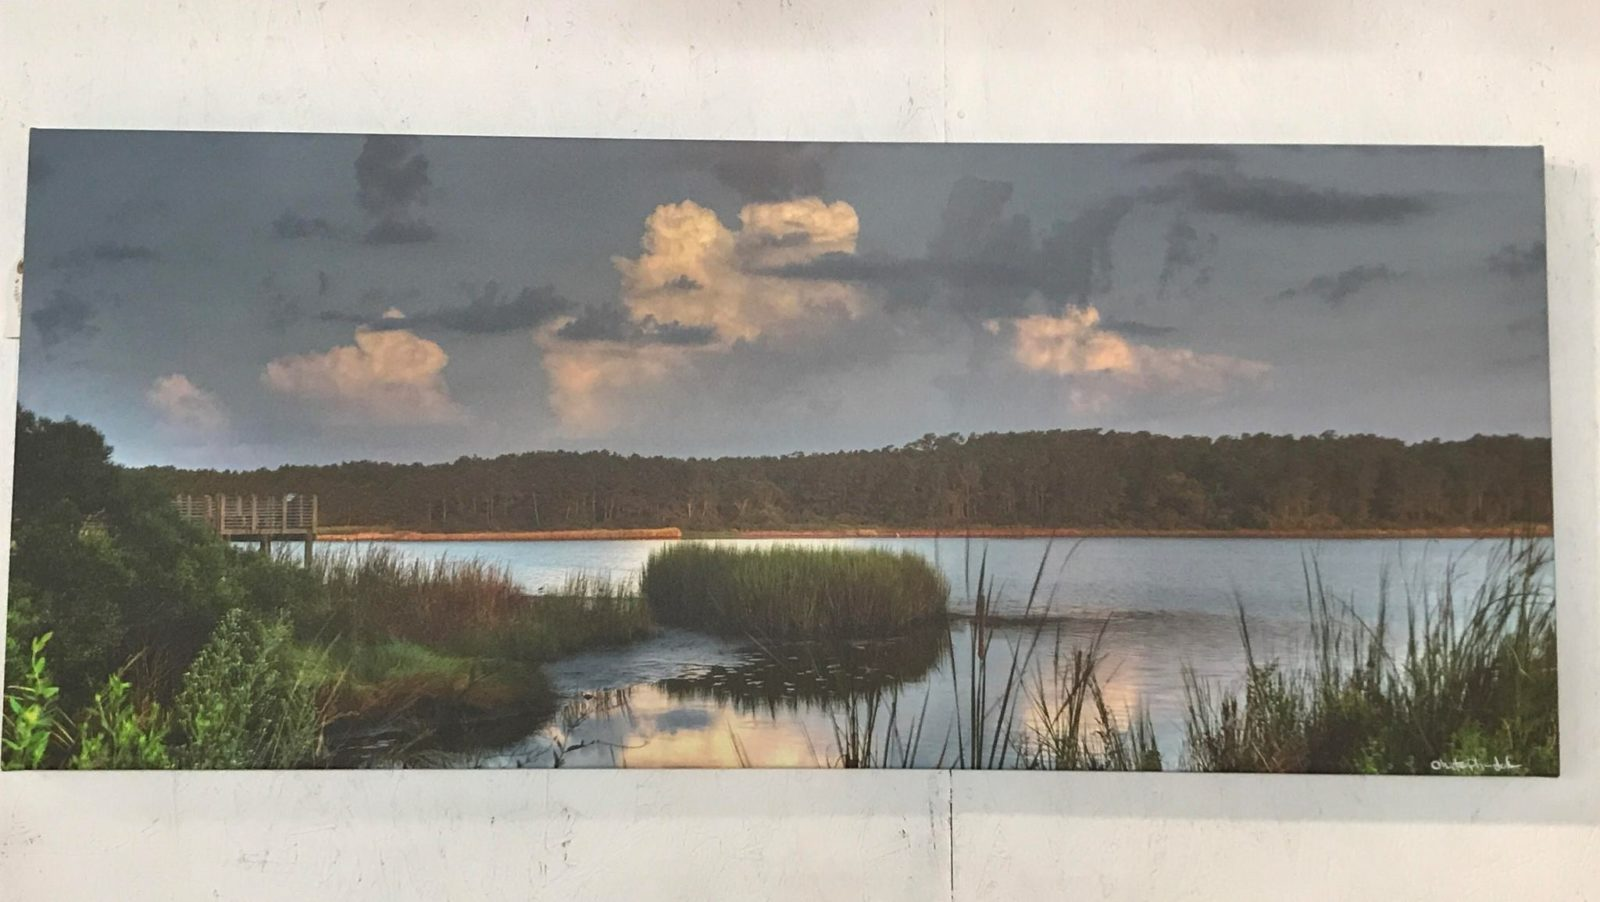 Marsh photo print on canvas • This photo doesn't do this beautiful picture justice! The colors are fabulous! Make a statement in your coastal decor with this wonderful piece!